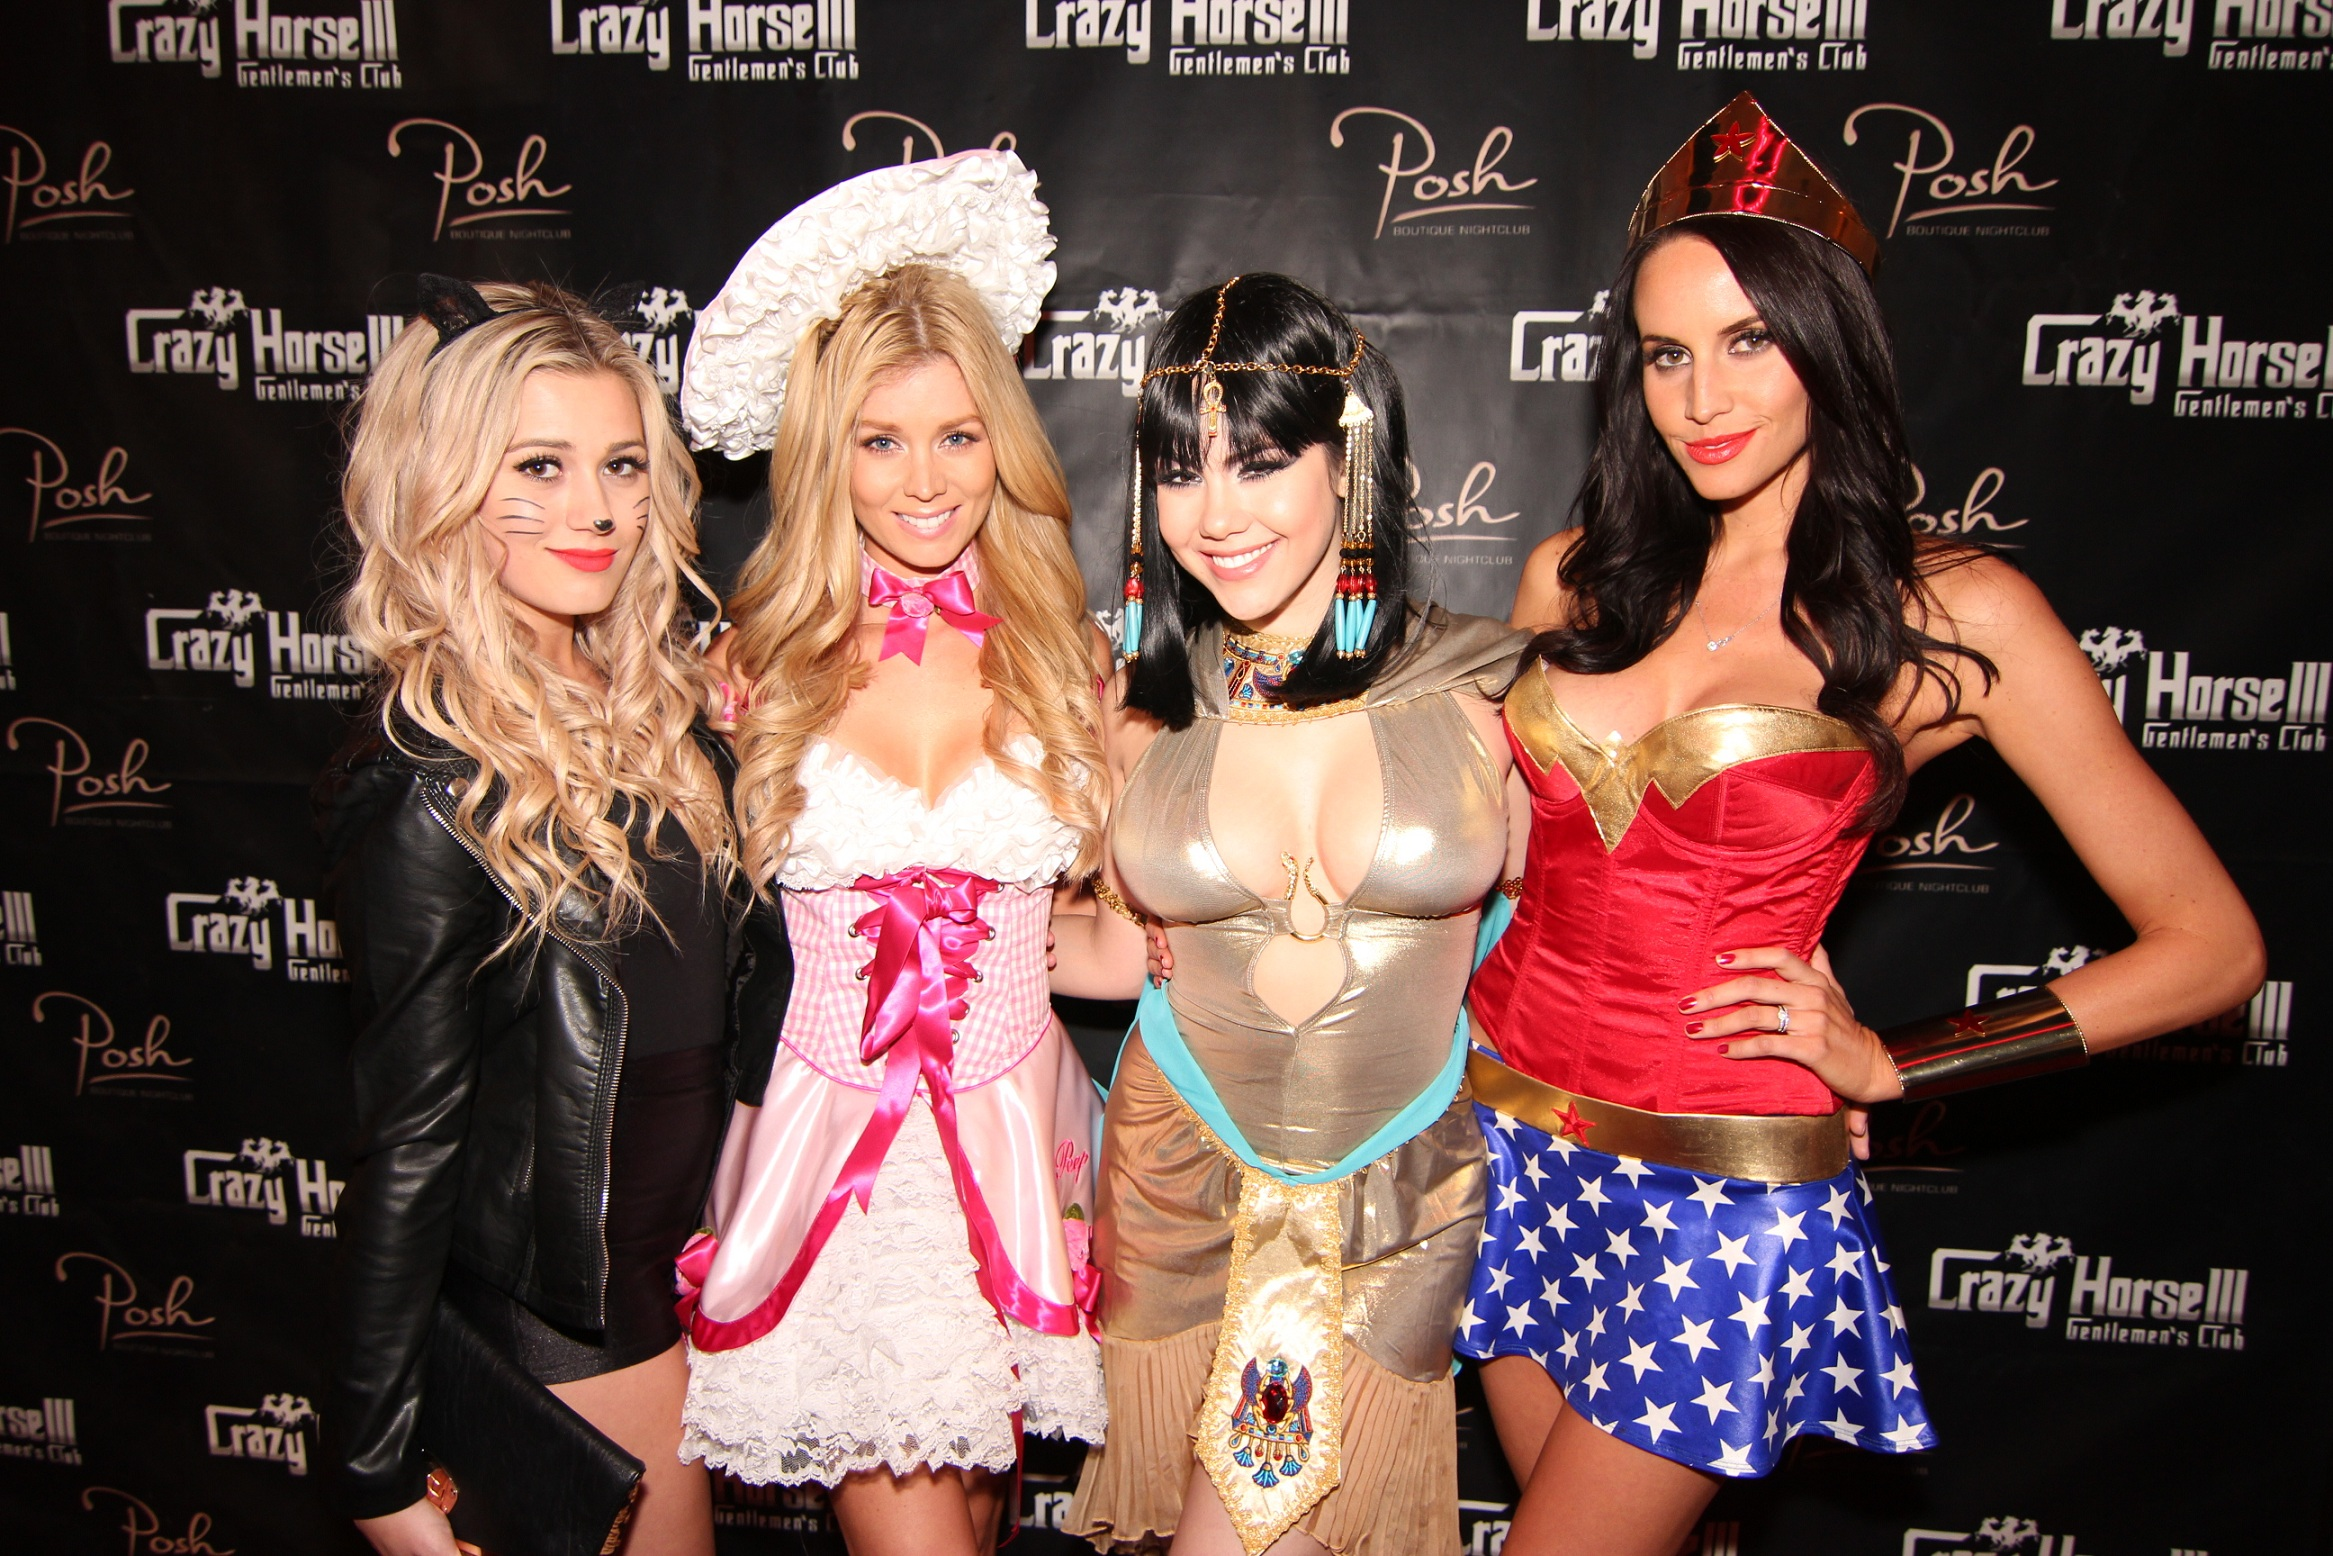 Karissa Pukas, Sheridyn Fisher,  Claire Sinclair and Lauren Vickers at Crazy Horse III